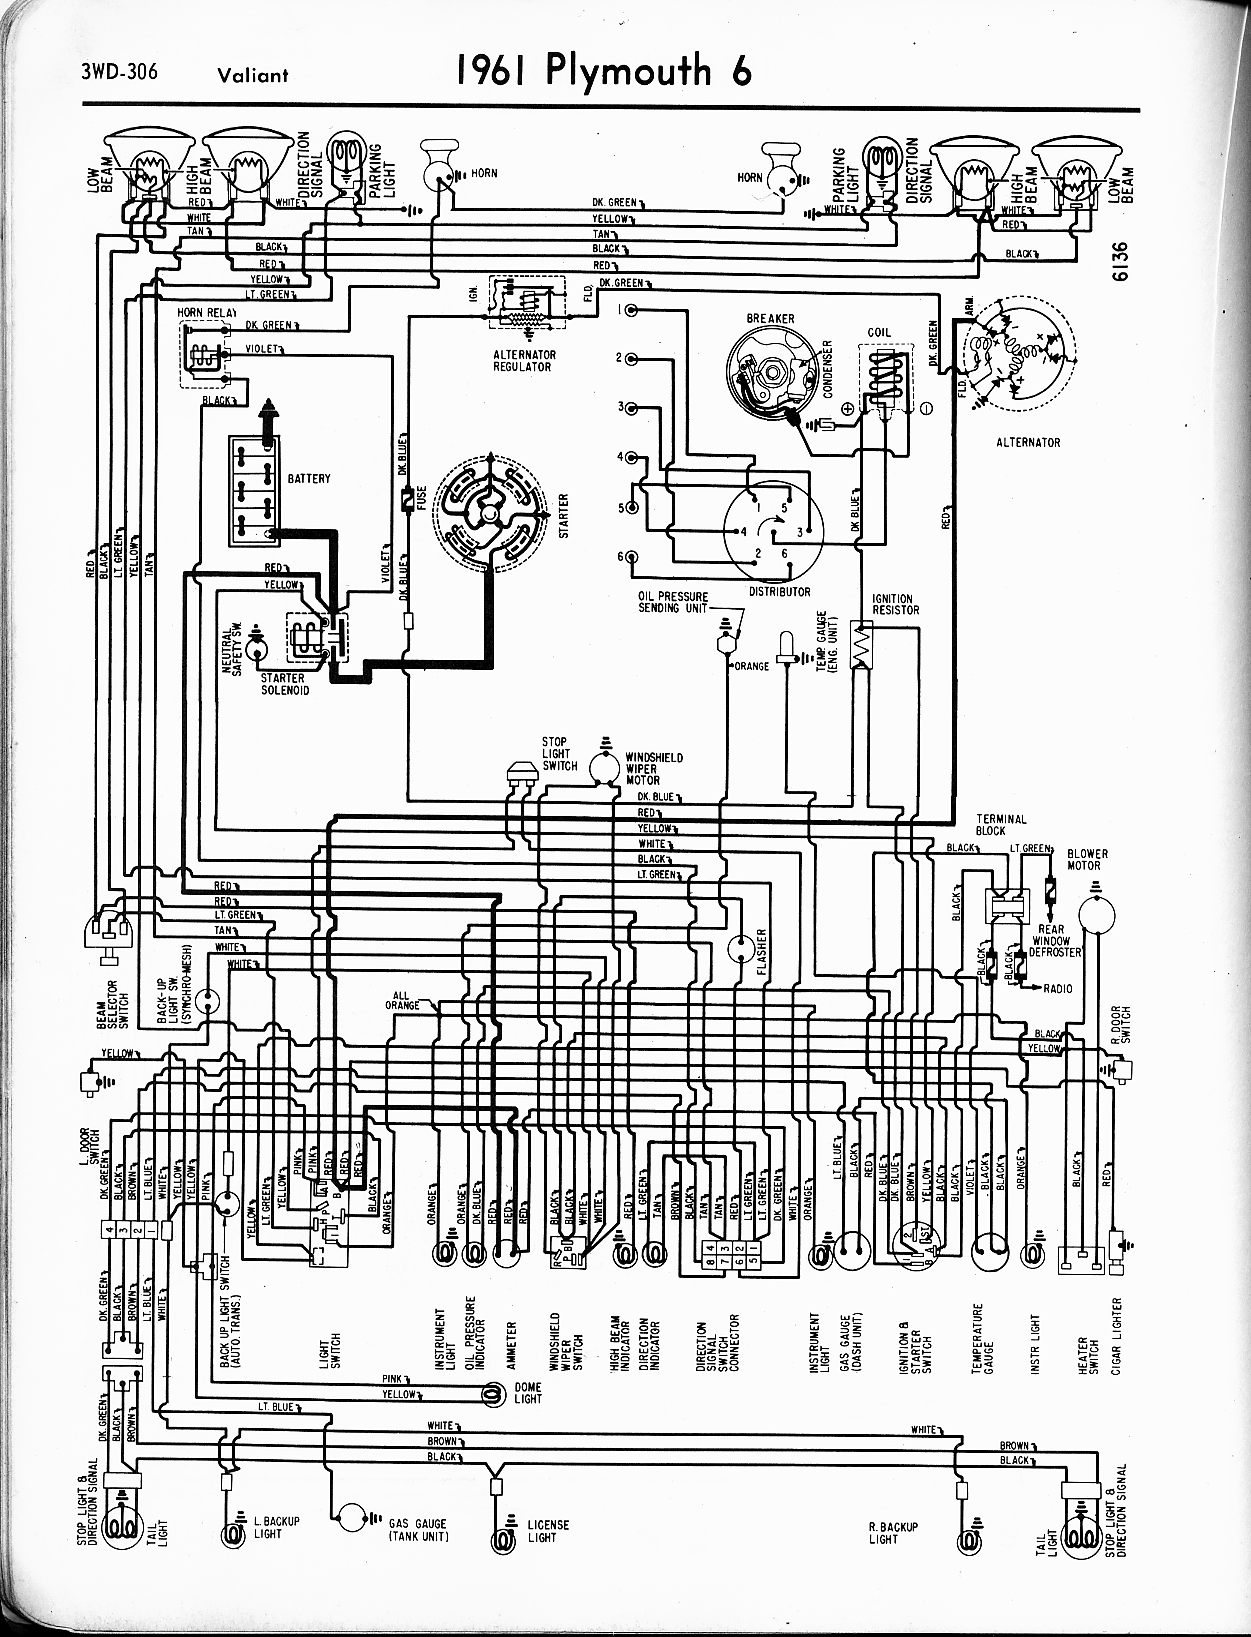 small resolution of wiring diagram for 1965 plymouth valiant use wiring diagram 68 plymouth wiring diagram